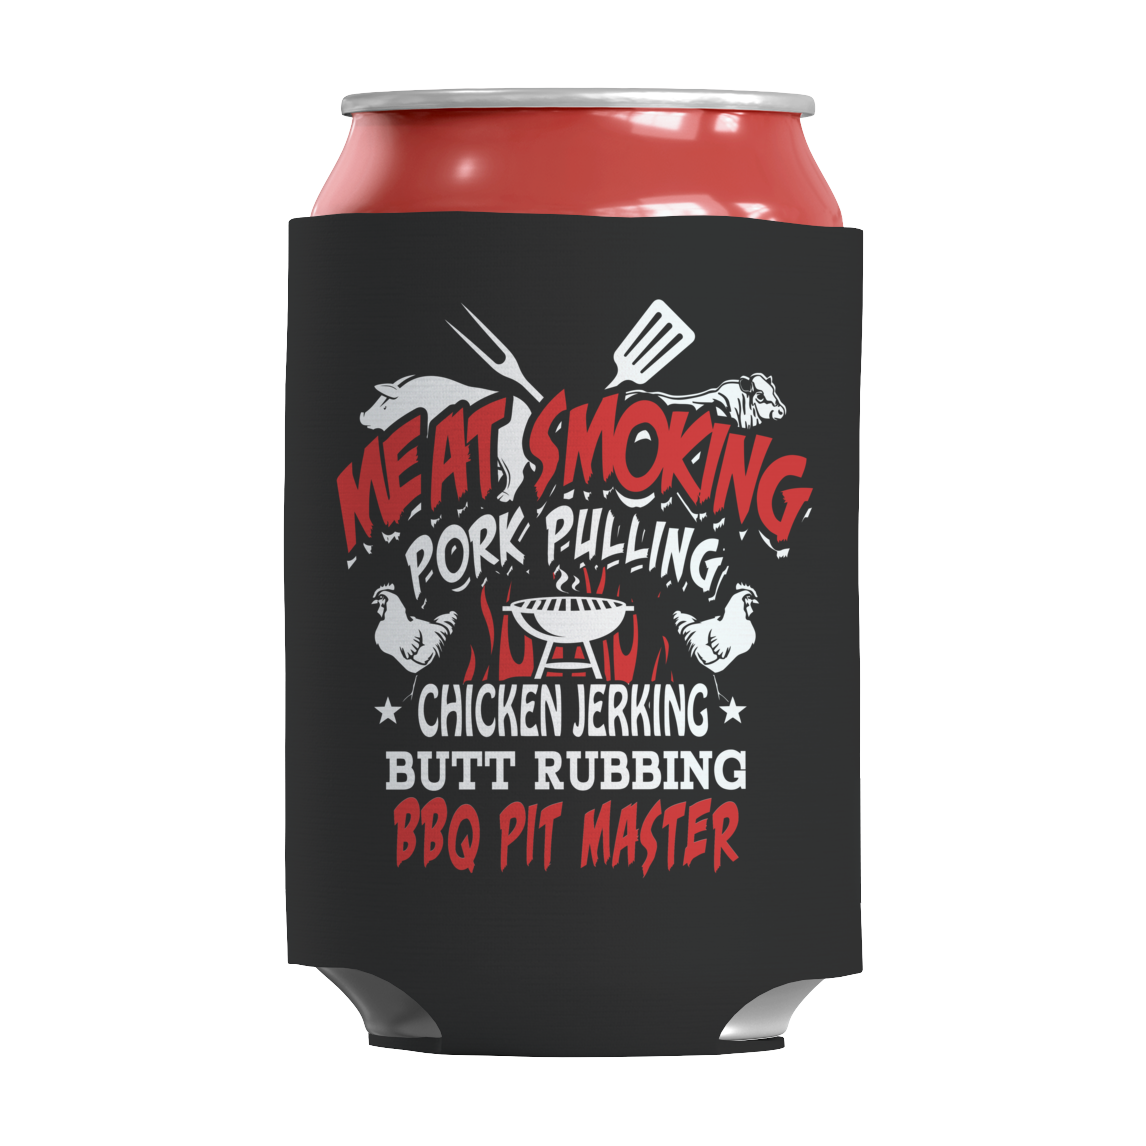 Limited Edition - Meat Smoking Pork Pulling